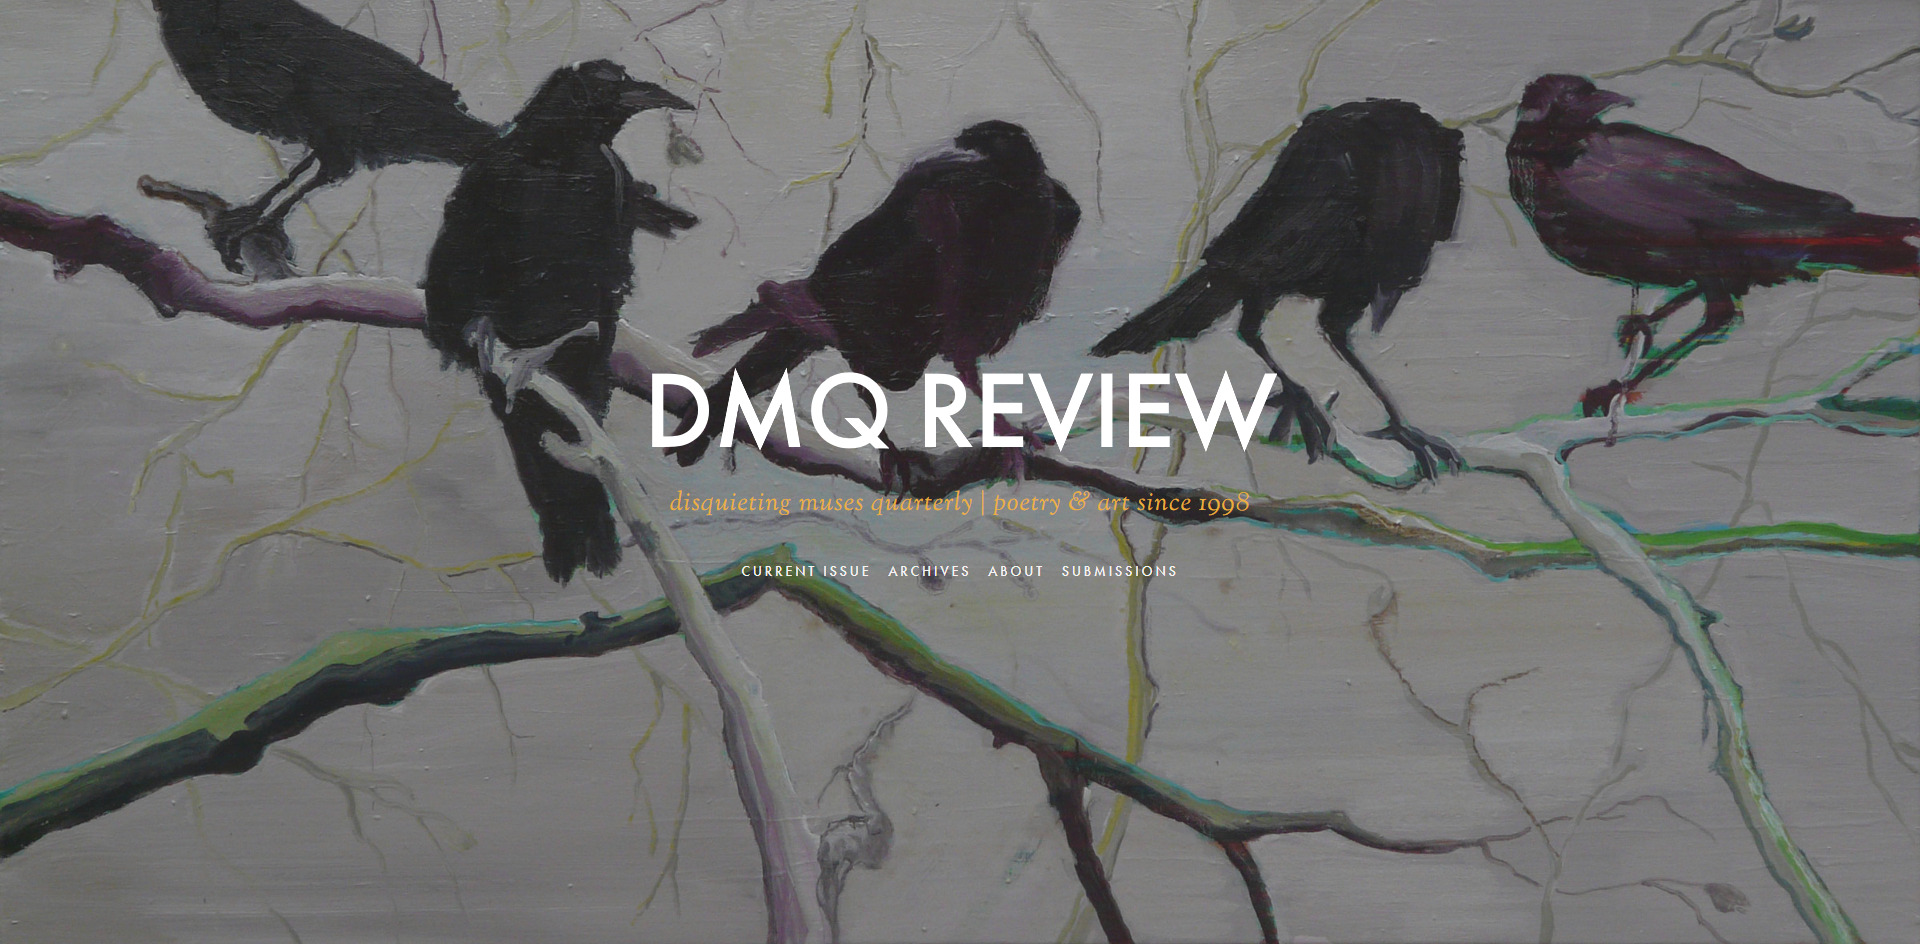 DMQ Review Spring 2019